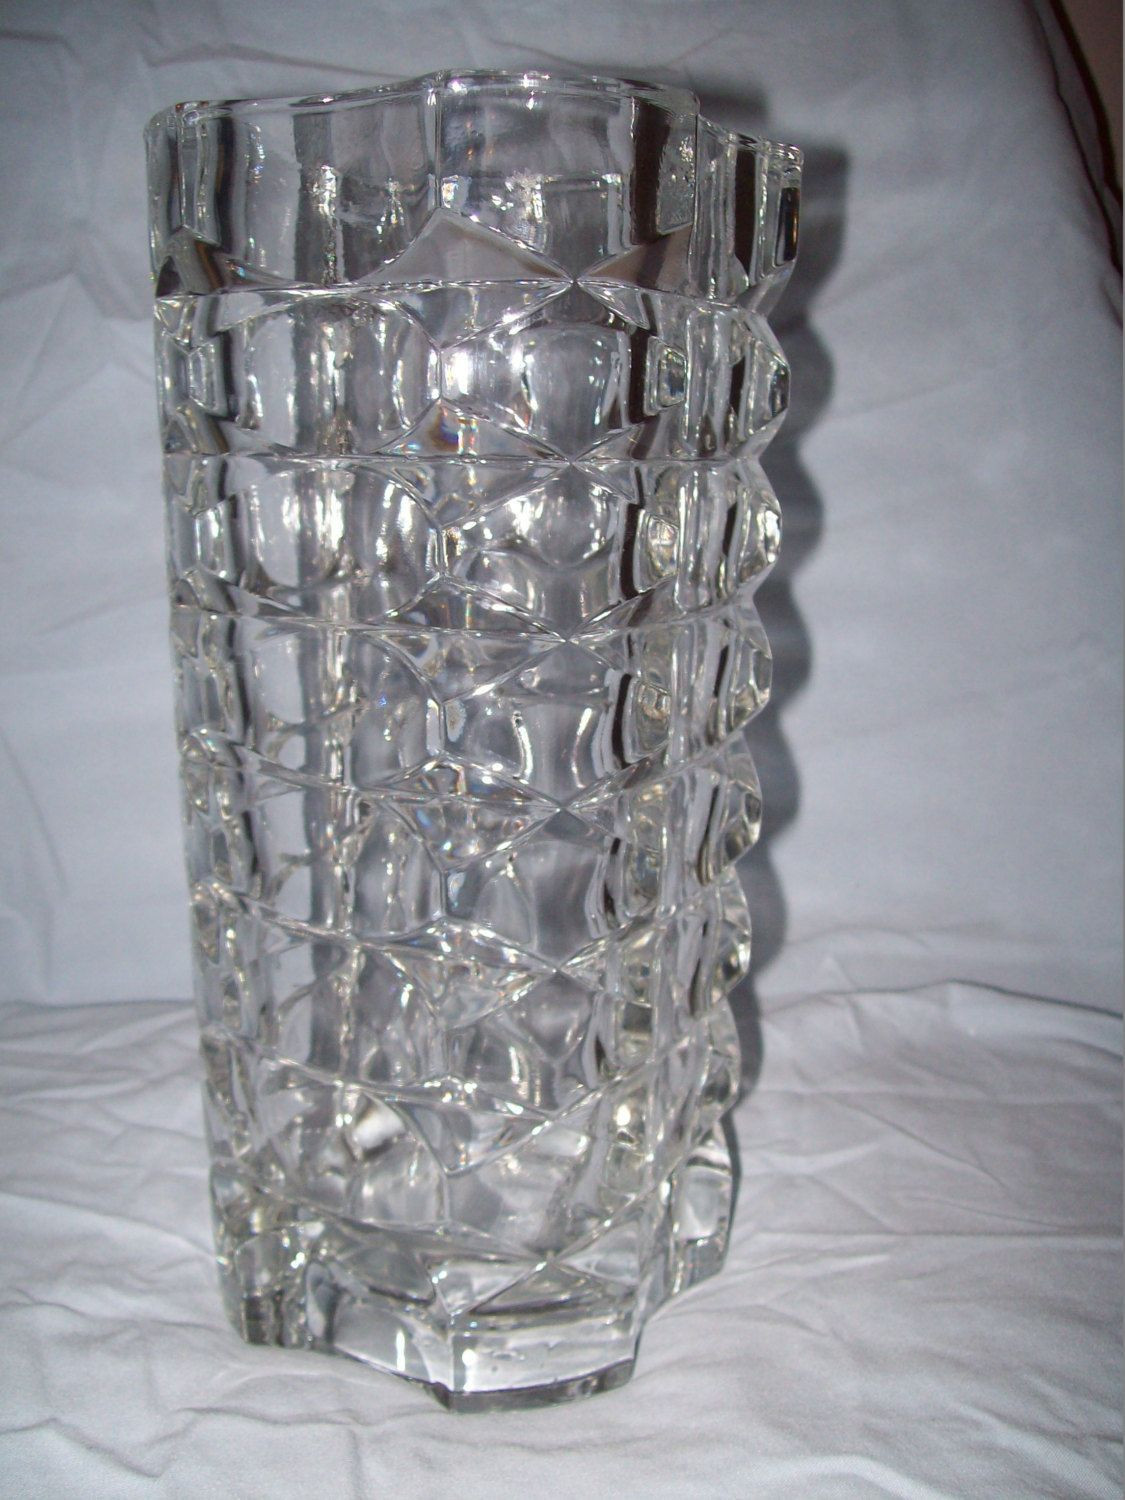 christmas hurricane vase of extra large glass vase gallery l h vases 12 inch hurricane clear throughout extra large glass vase gallery clear glass very old large vase leaded glass very heavy 66